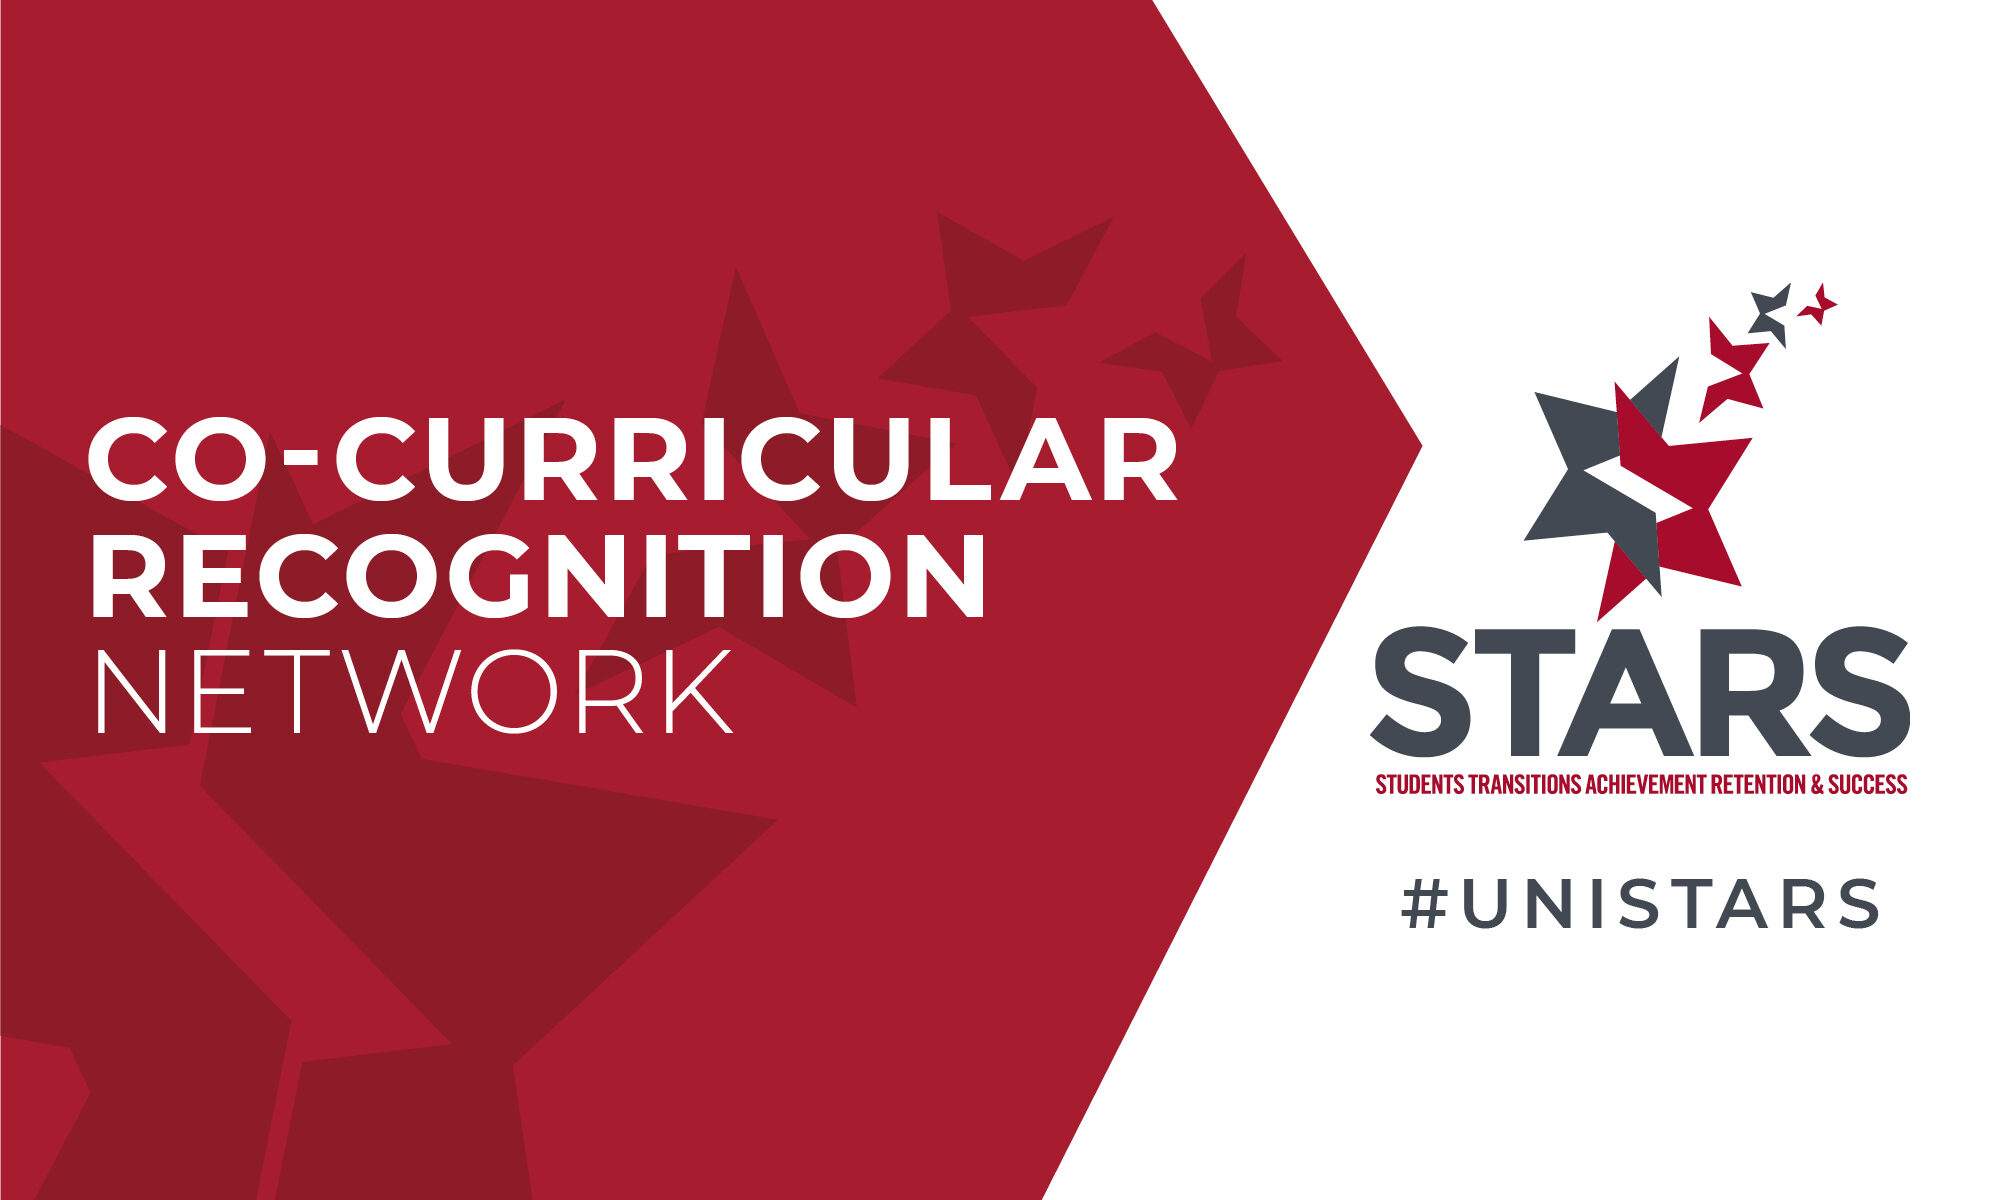 Co-Curricular Recognition Network